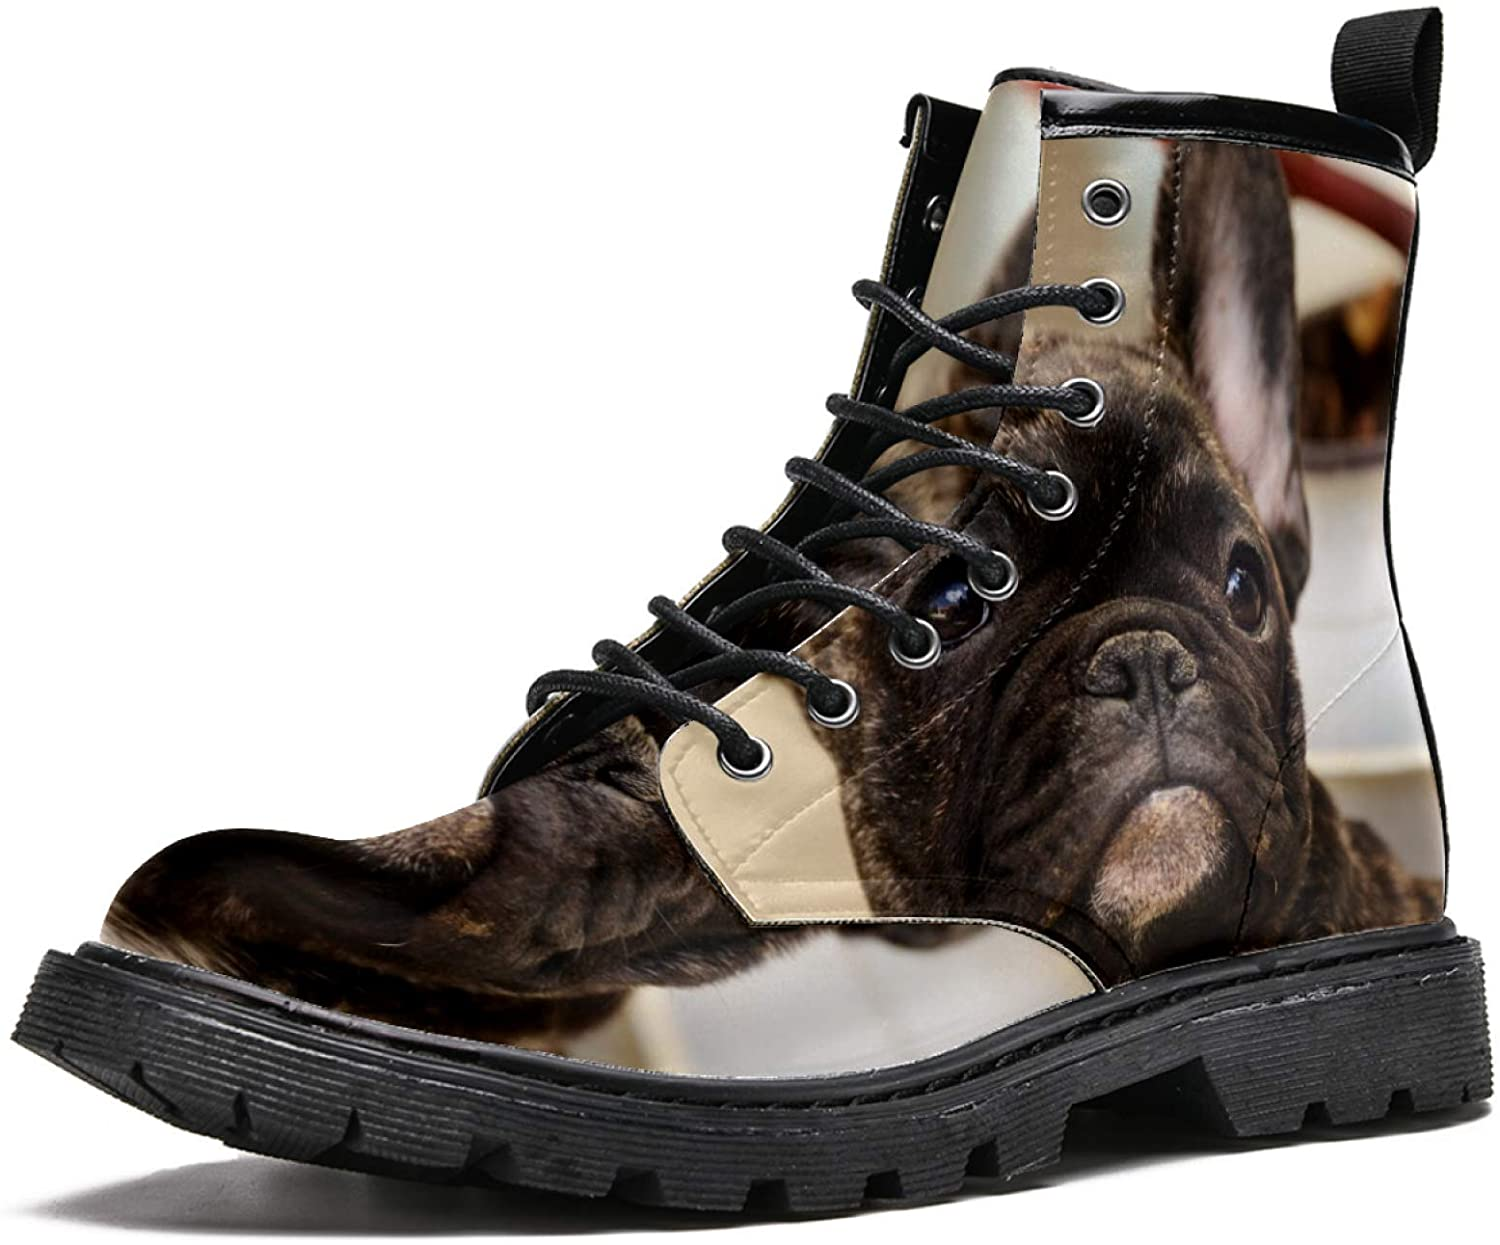 LORVIES Cute Bulldog Men's High Top Boots Lace Up Casual Leather Ankle Shoes